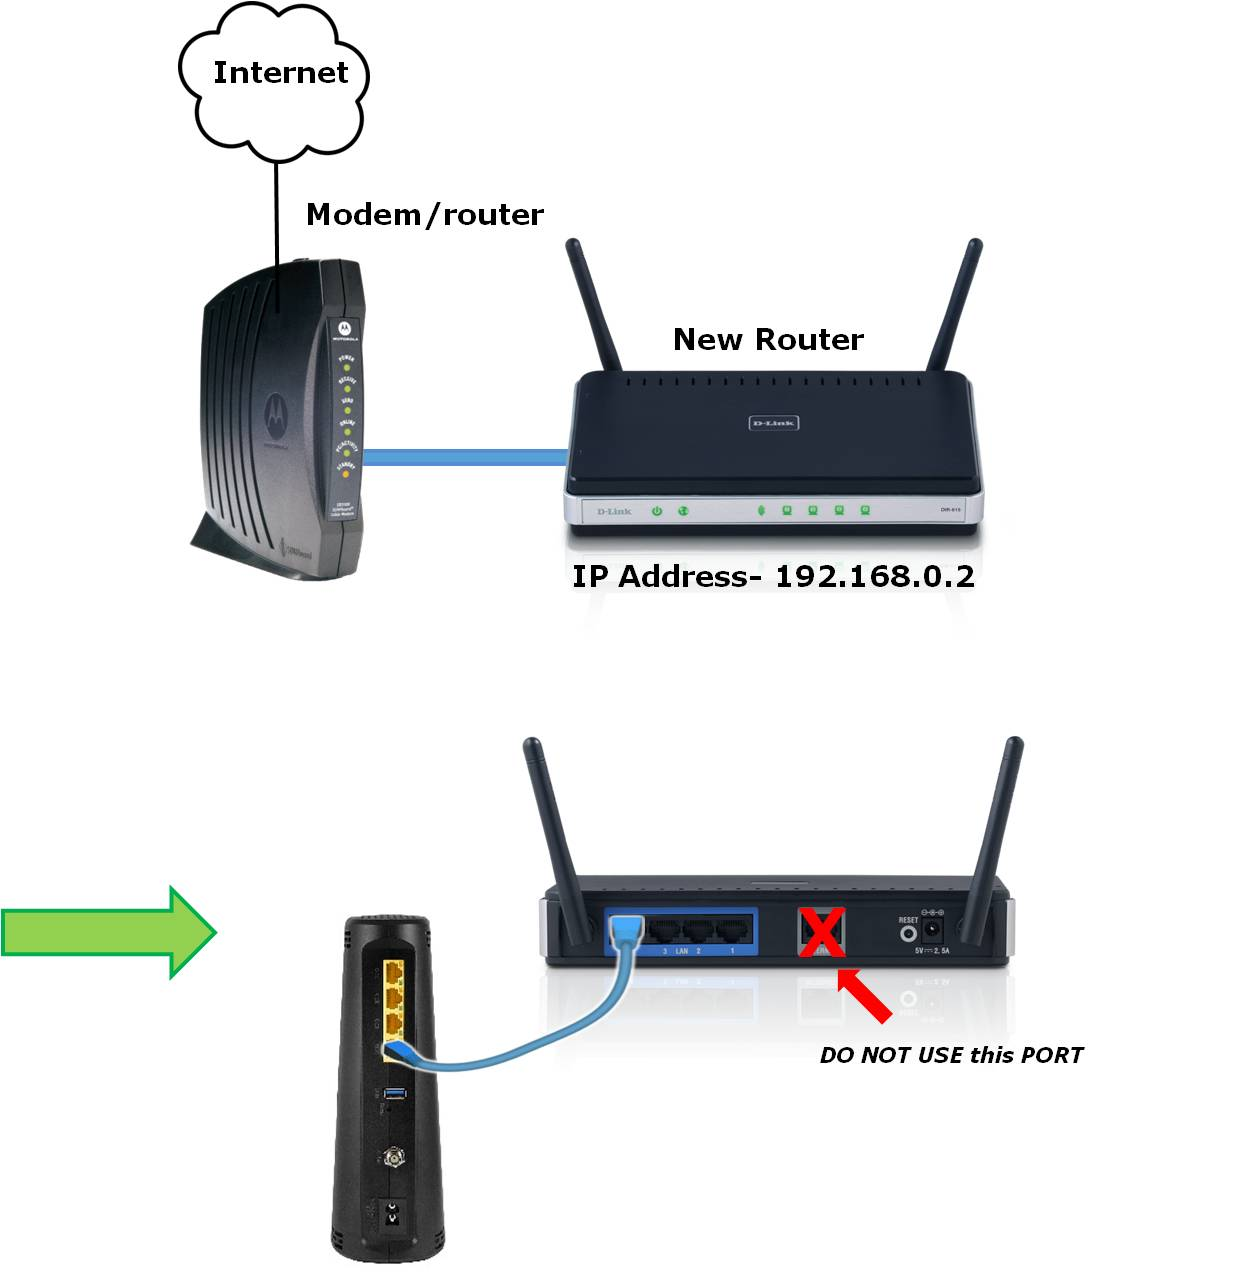 Connect 2 routers together